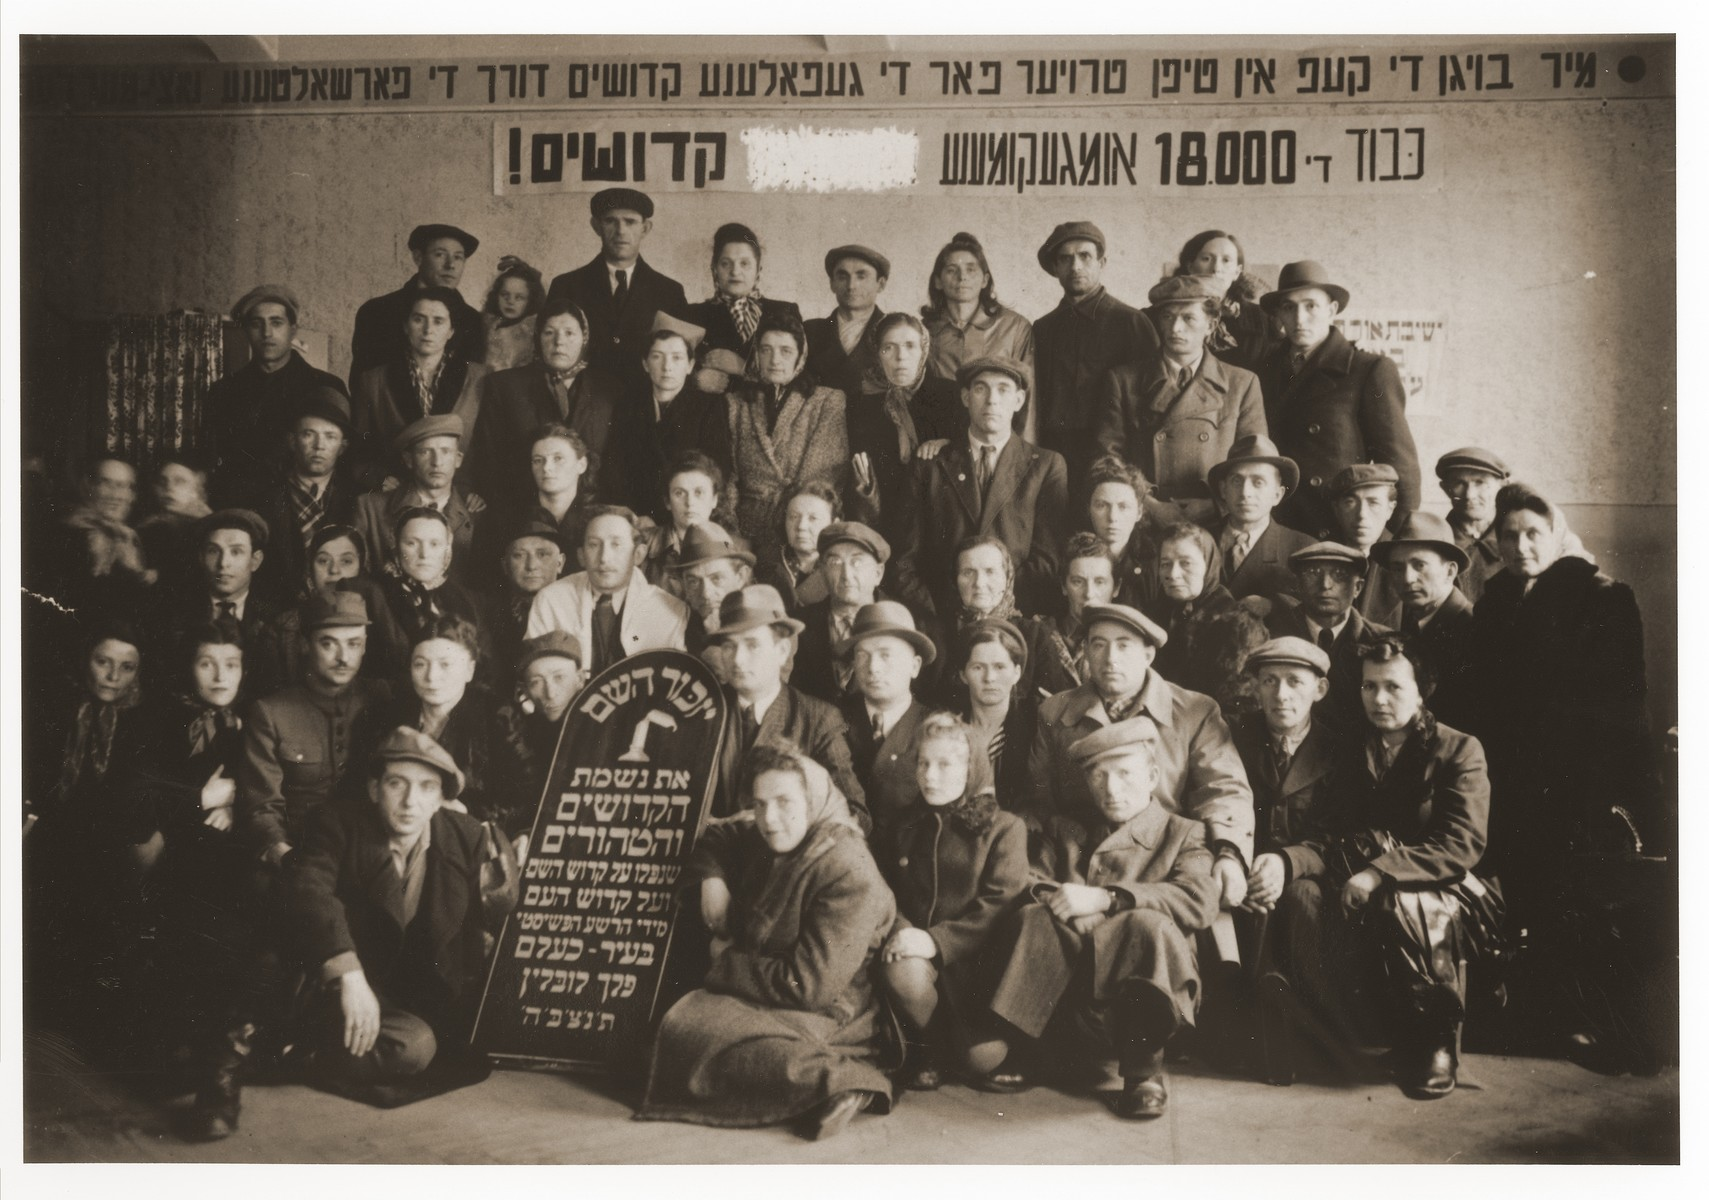 Group portrait of survivors from Chelm attending a memorial reunion on the [fifth?] anniversary of the destruction of the Jewish community in Chelm.  Among those pictured is Yakov Alster (seated on far right). Also pictured is Pinchos Feldman (second row from the top, seventh from the left with a hand on his shoulder).  Pictured in the fourth row center, directly above the tablet, is Raisel Rybajzen (later Roza Munn). In the back row, far left, standing next to the tall man, is Pola (nee Engel) Munn.